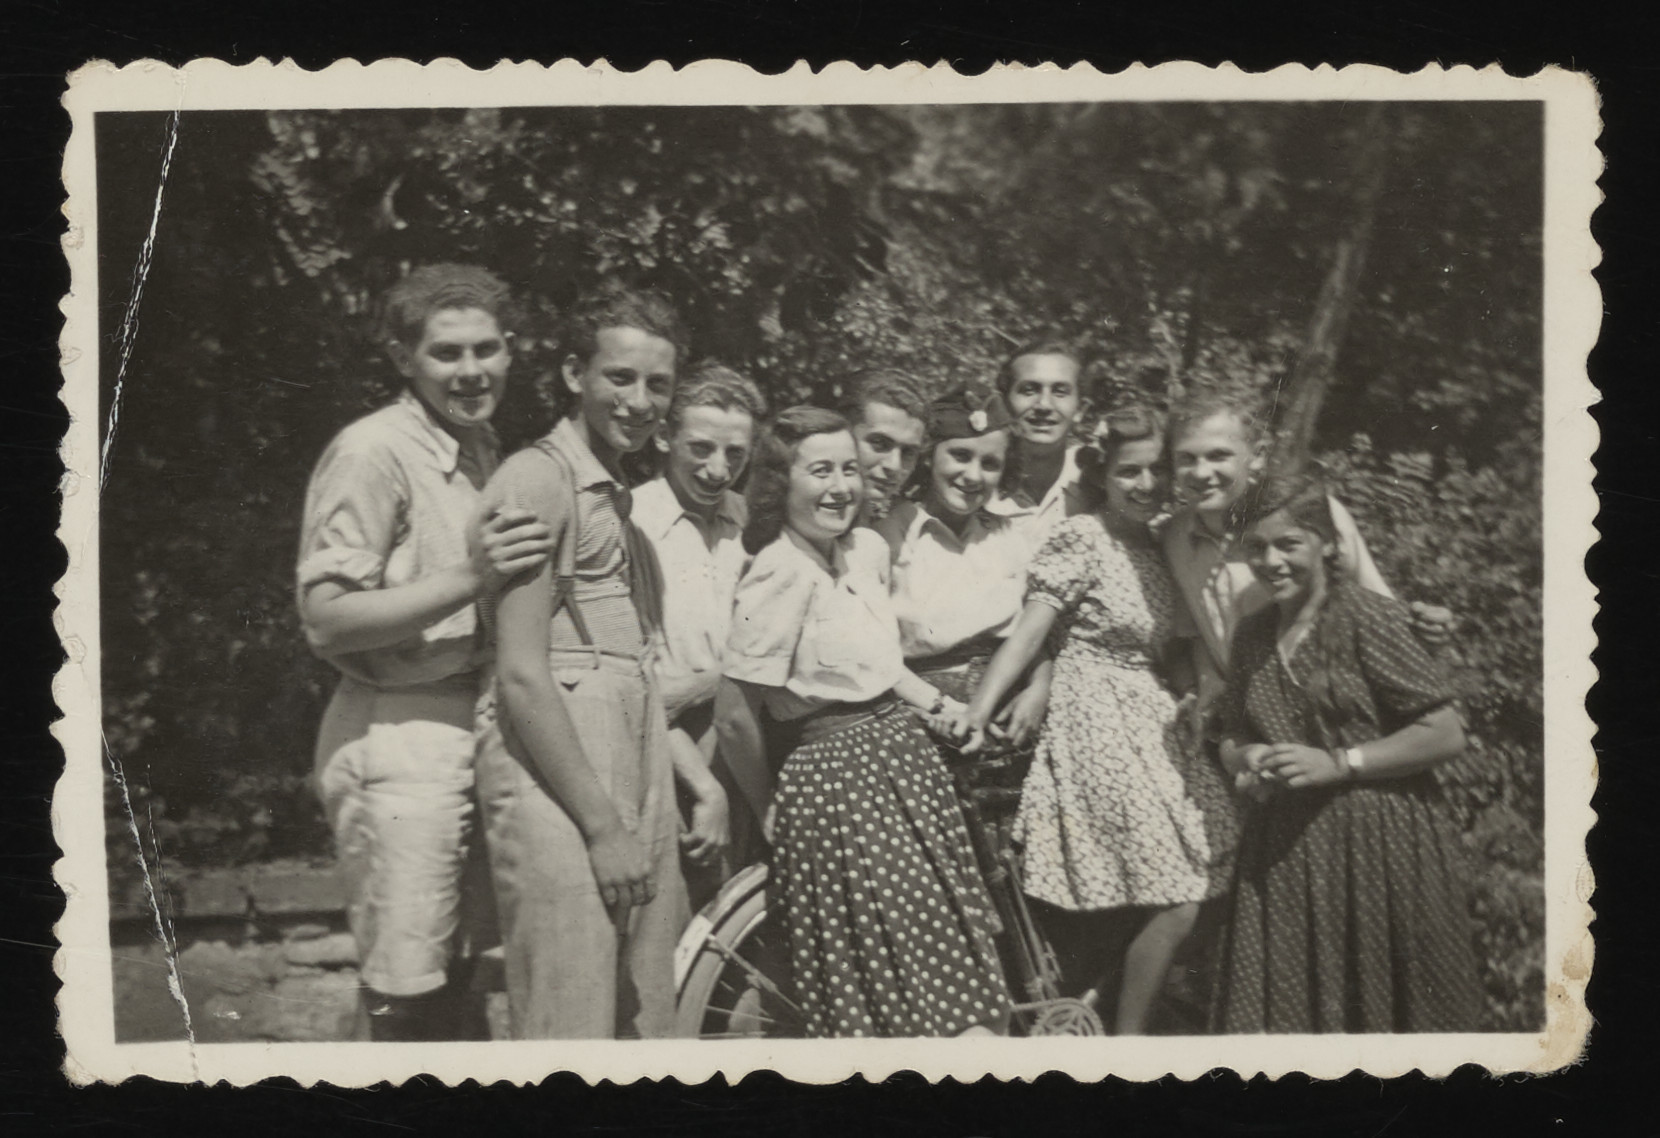 Group portrait of Hungarian Jewish teenagers.  Among those pictured is Paul Ornstein (center).